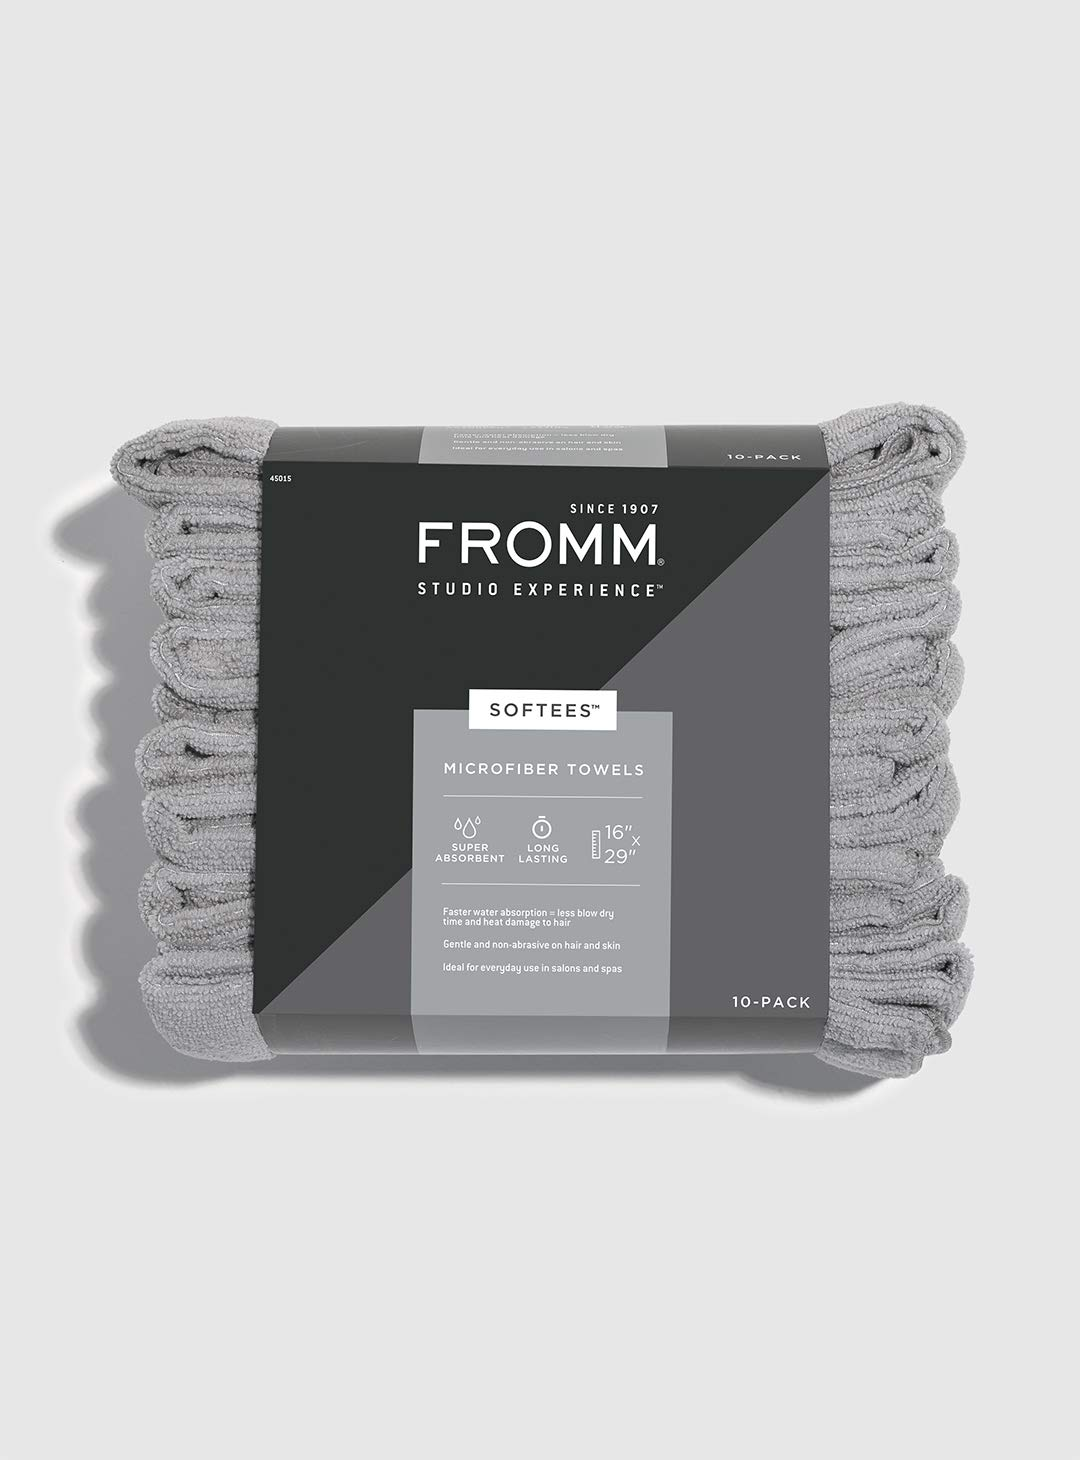 Max 74% OFF Fromm Softees Microfiber Towels – 10 Fast Pack Dryin Special price for a limited time